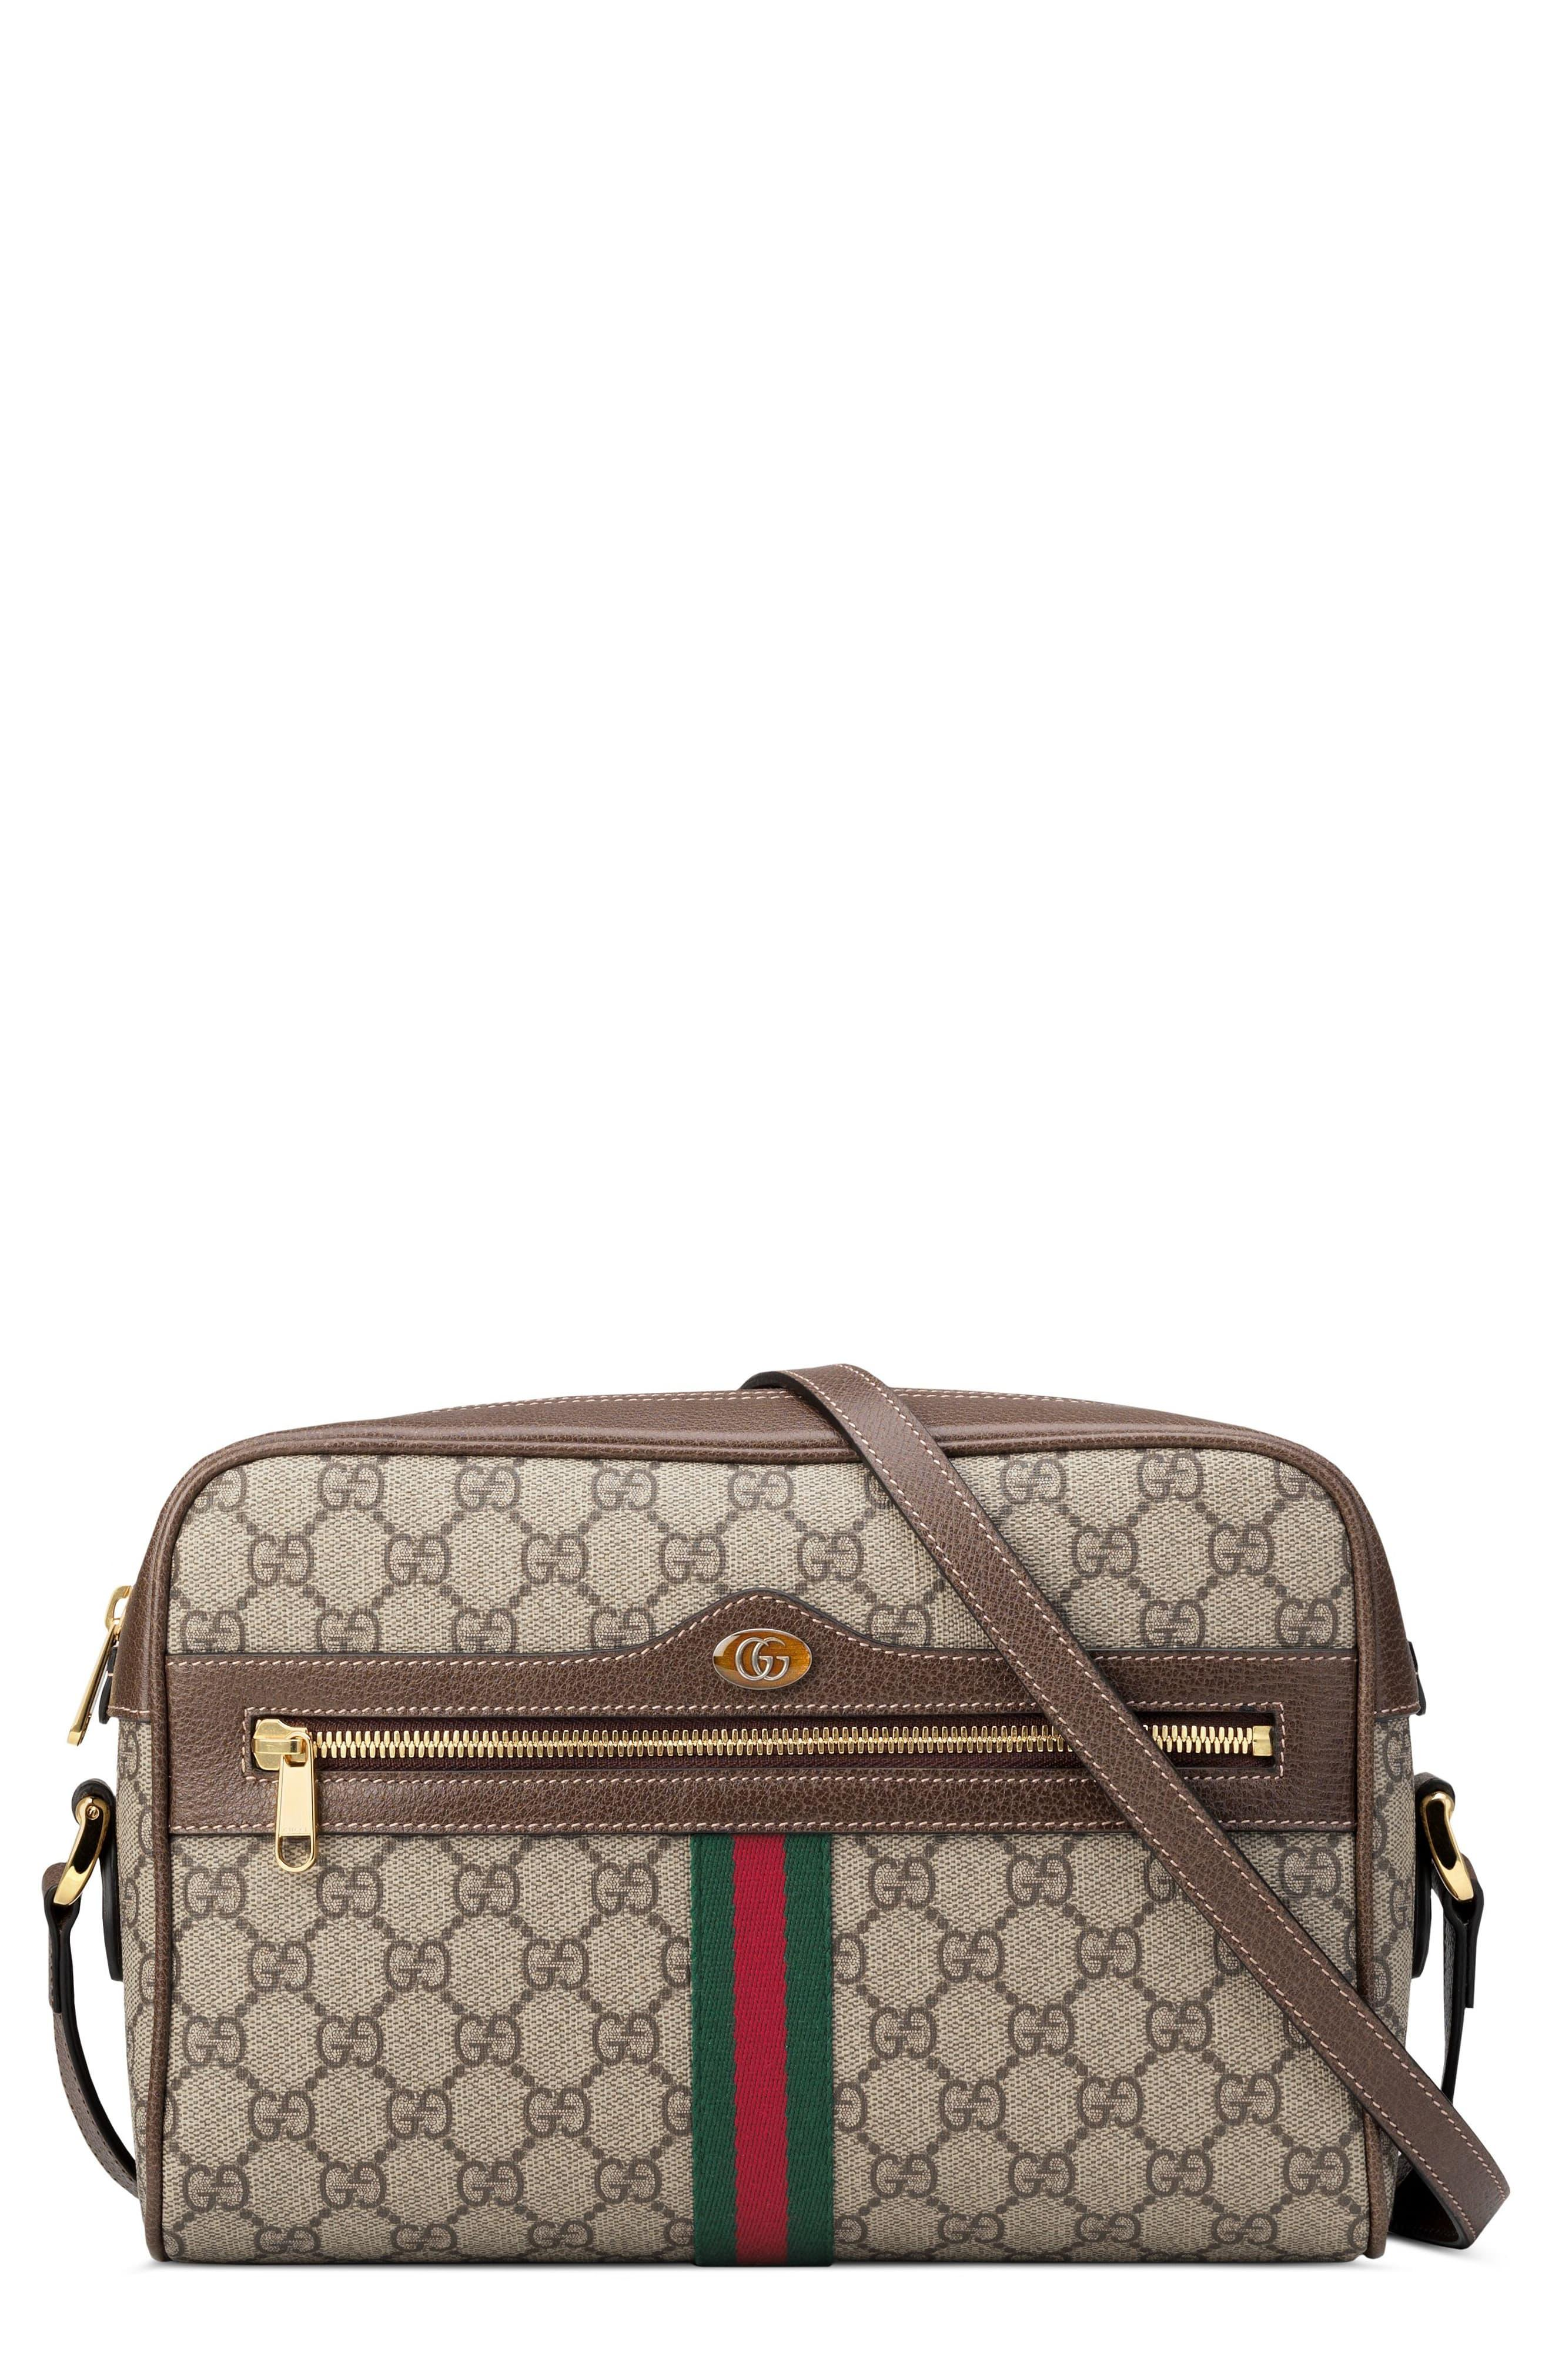 Gucci Ophidia Gg Supreme Canvas Crossbody Bag in Natural - Lyst